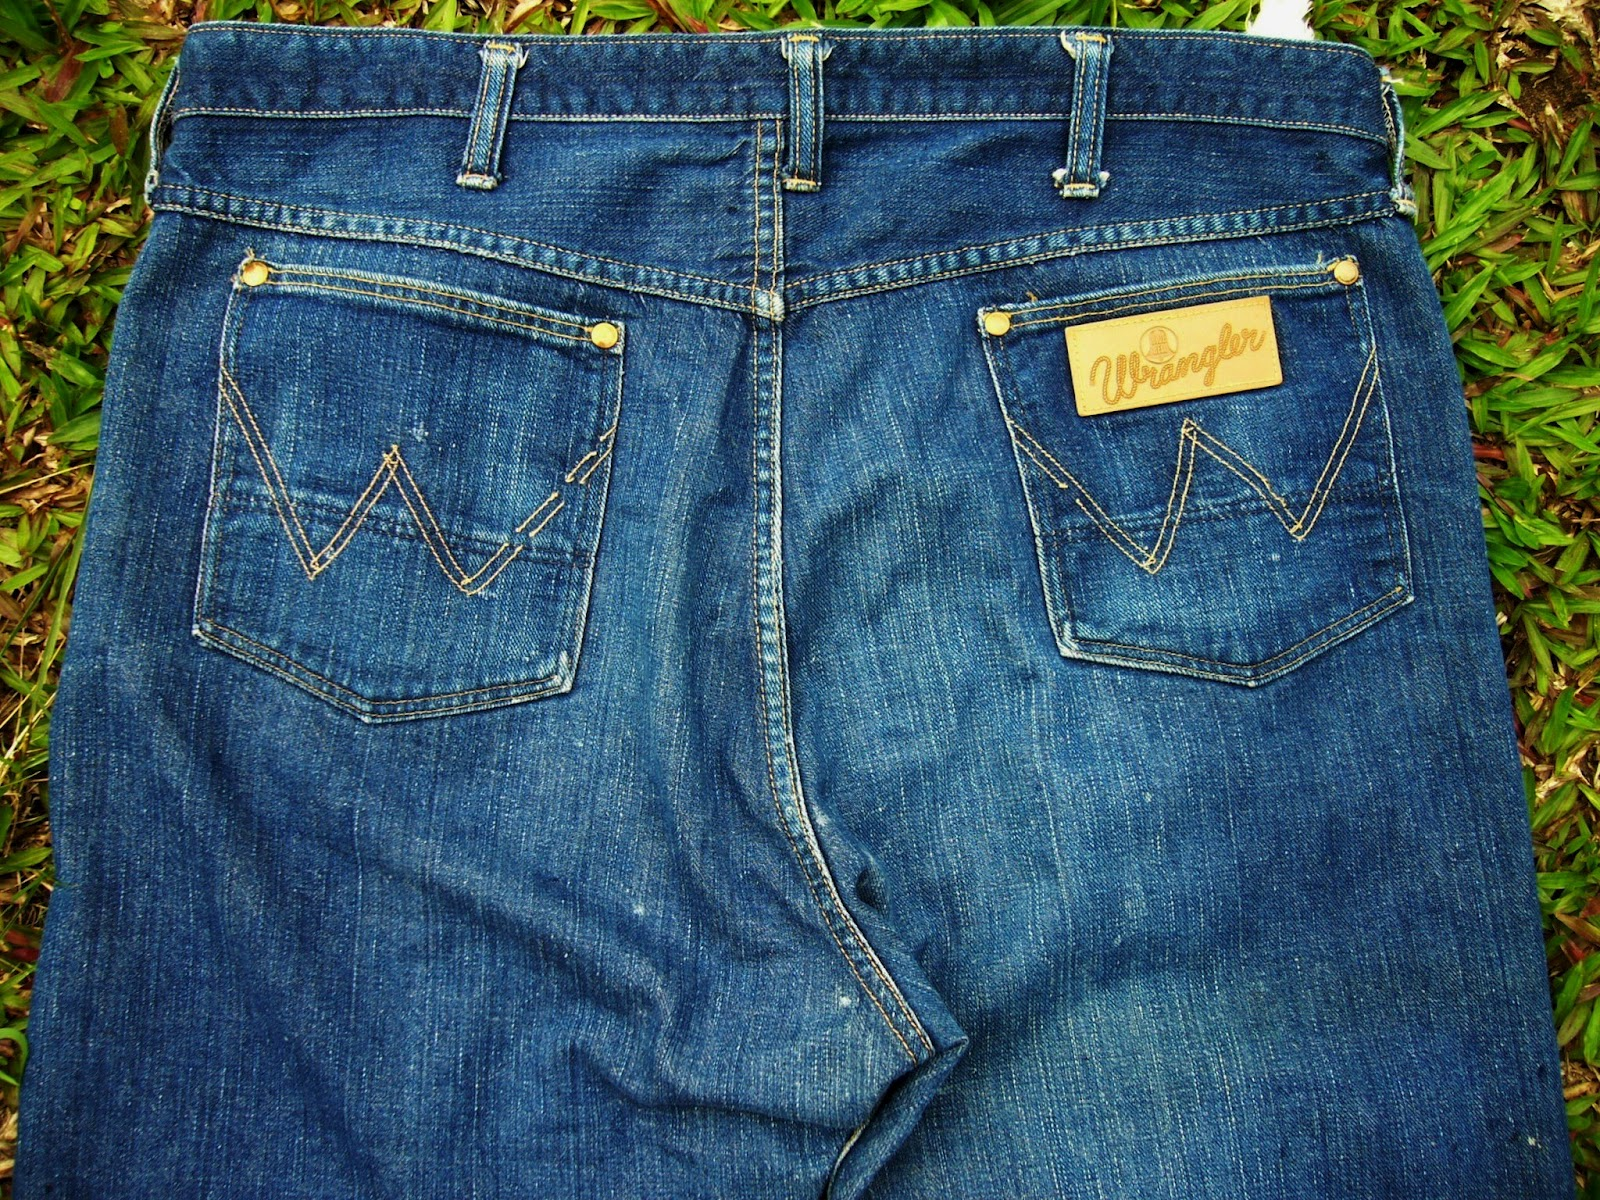 Wish You Were Here Vintage Wrangler Blue Bell 11MWZ Jeans